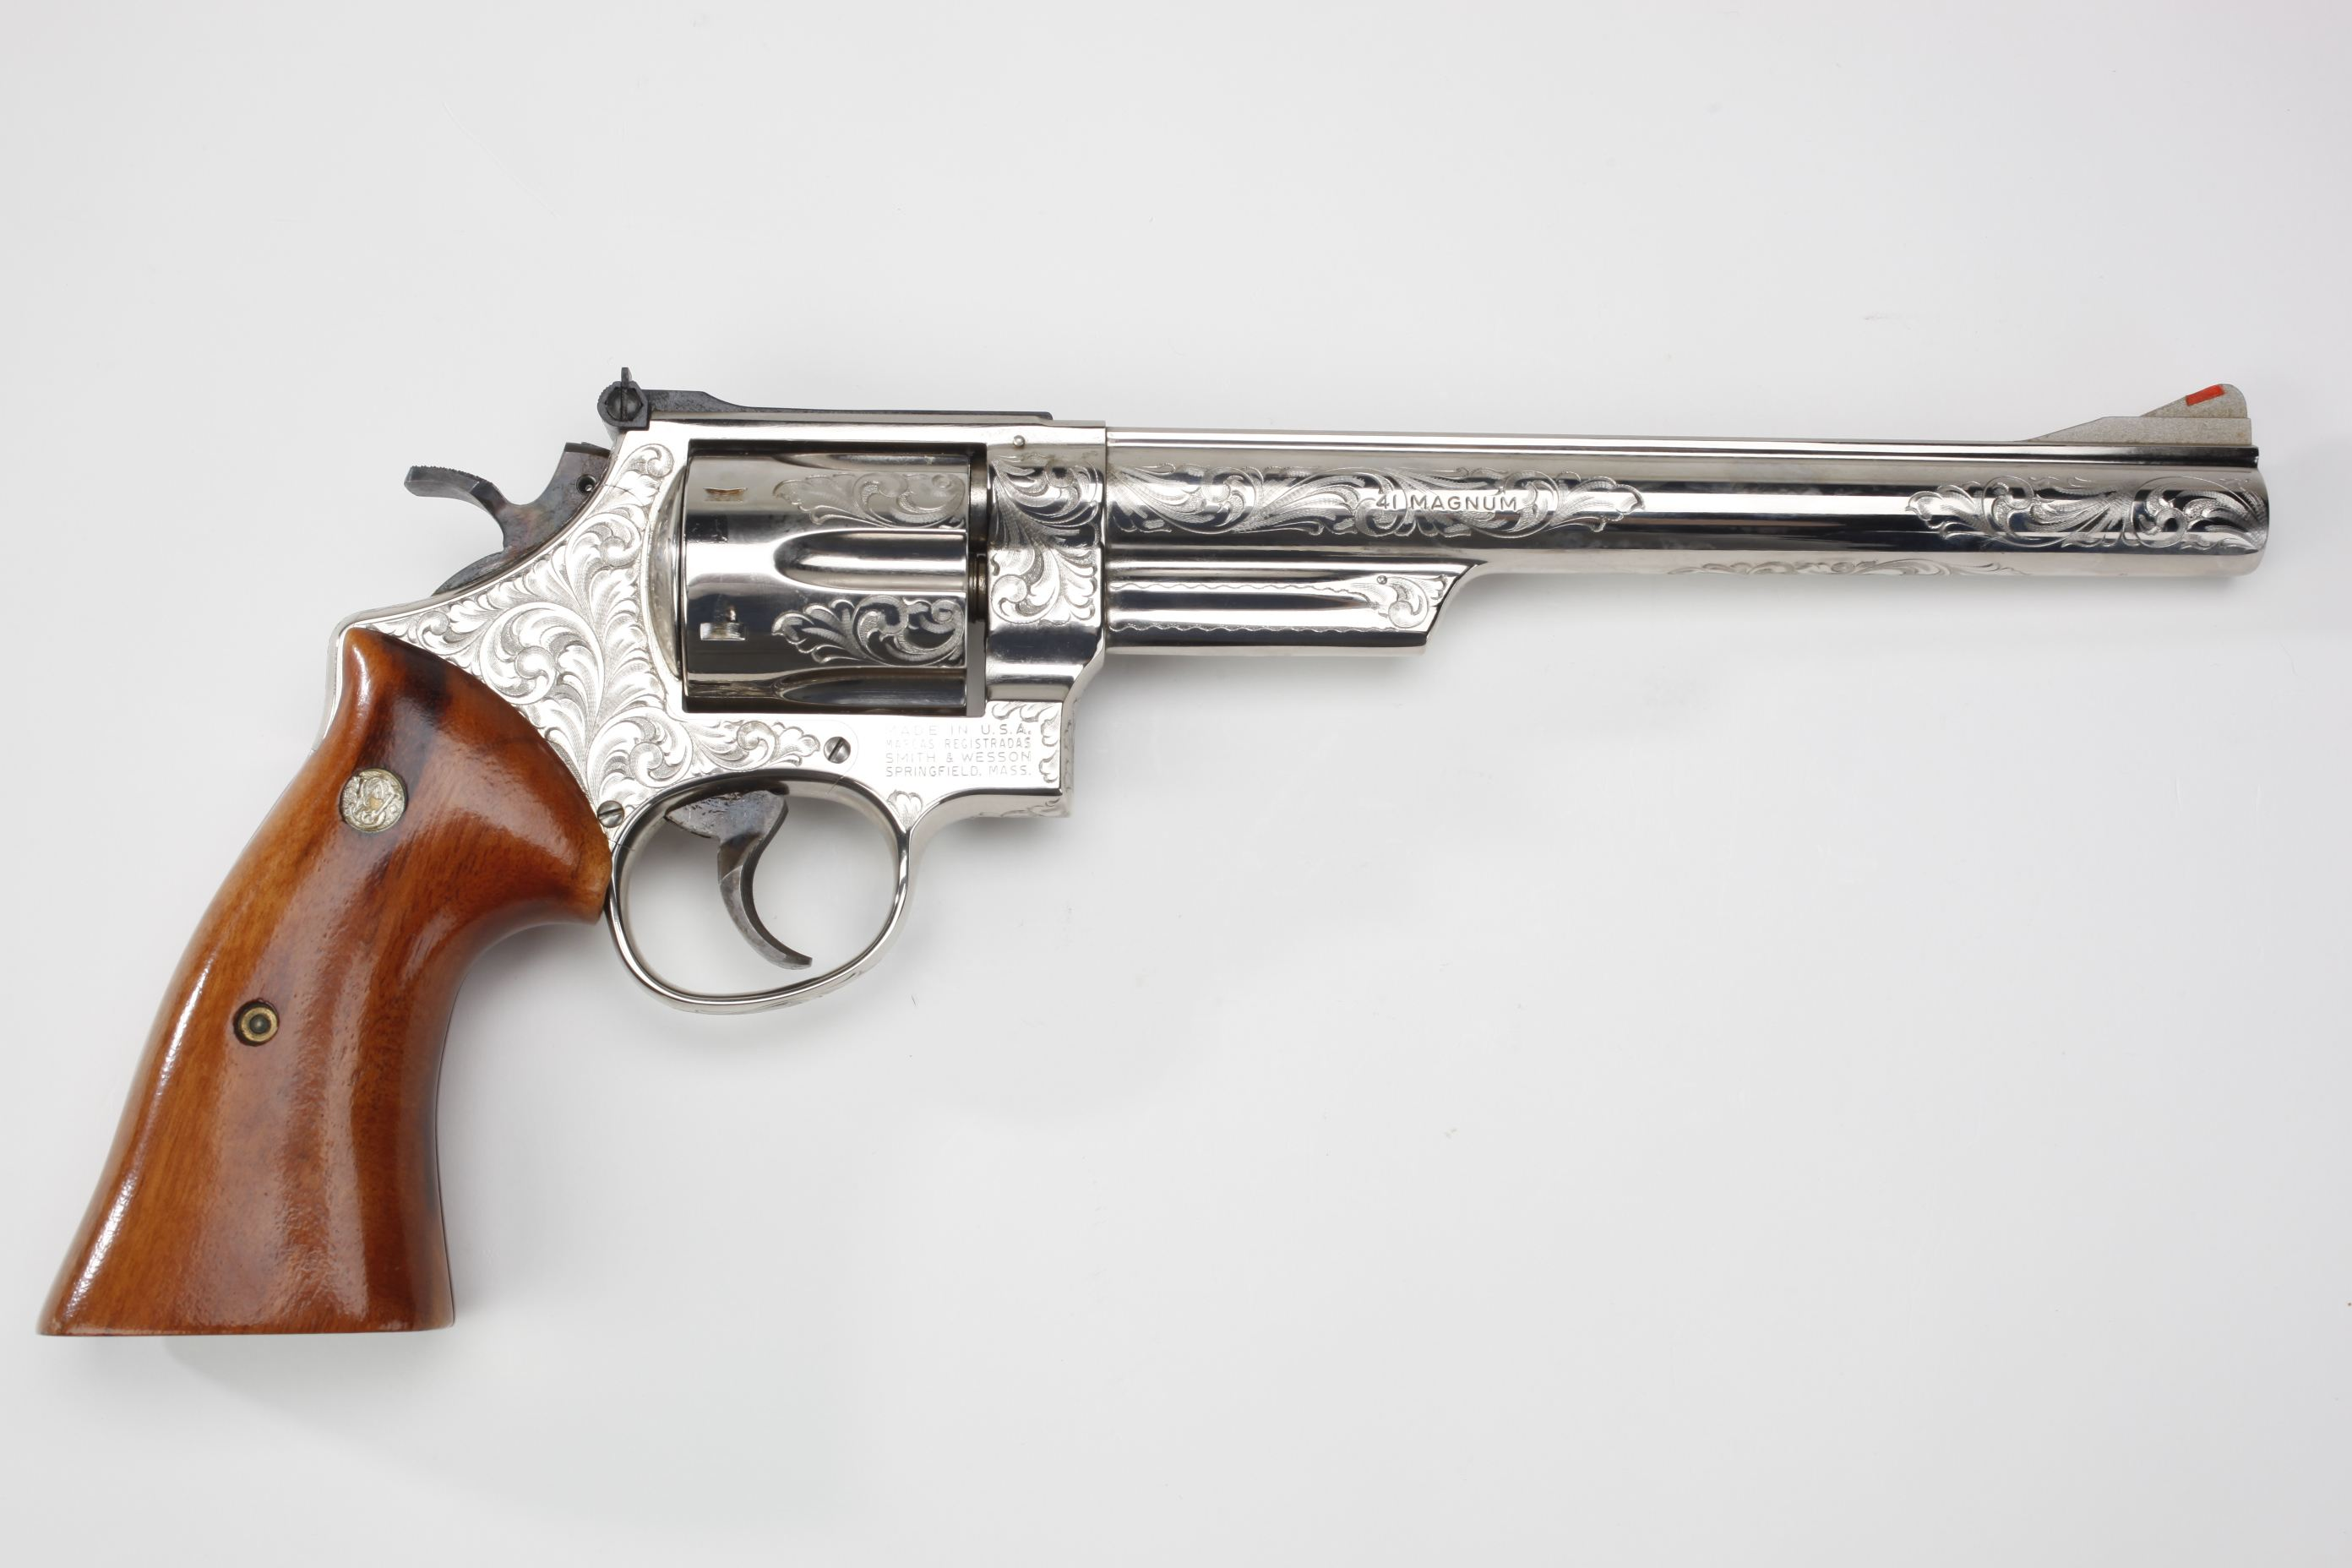 Smith & Wesson Model 57 Double-Action Revolver w/ wood grip panels